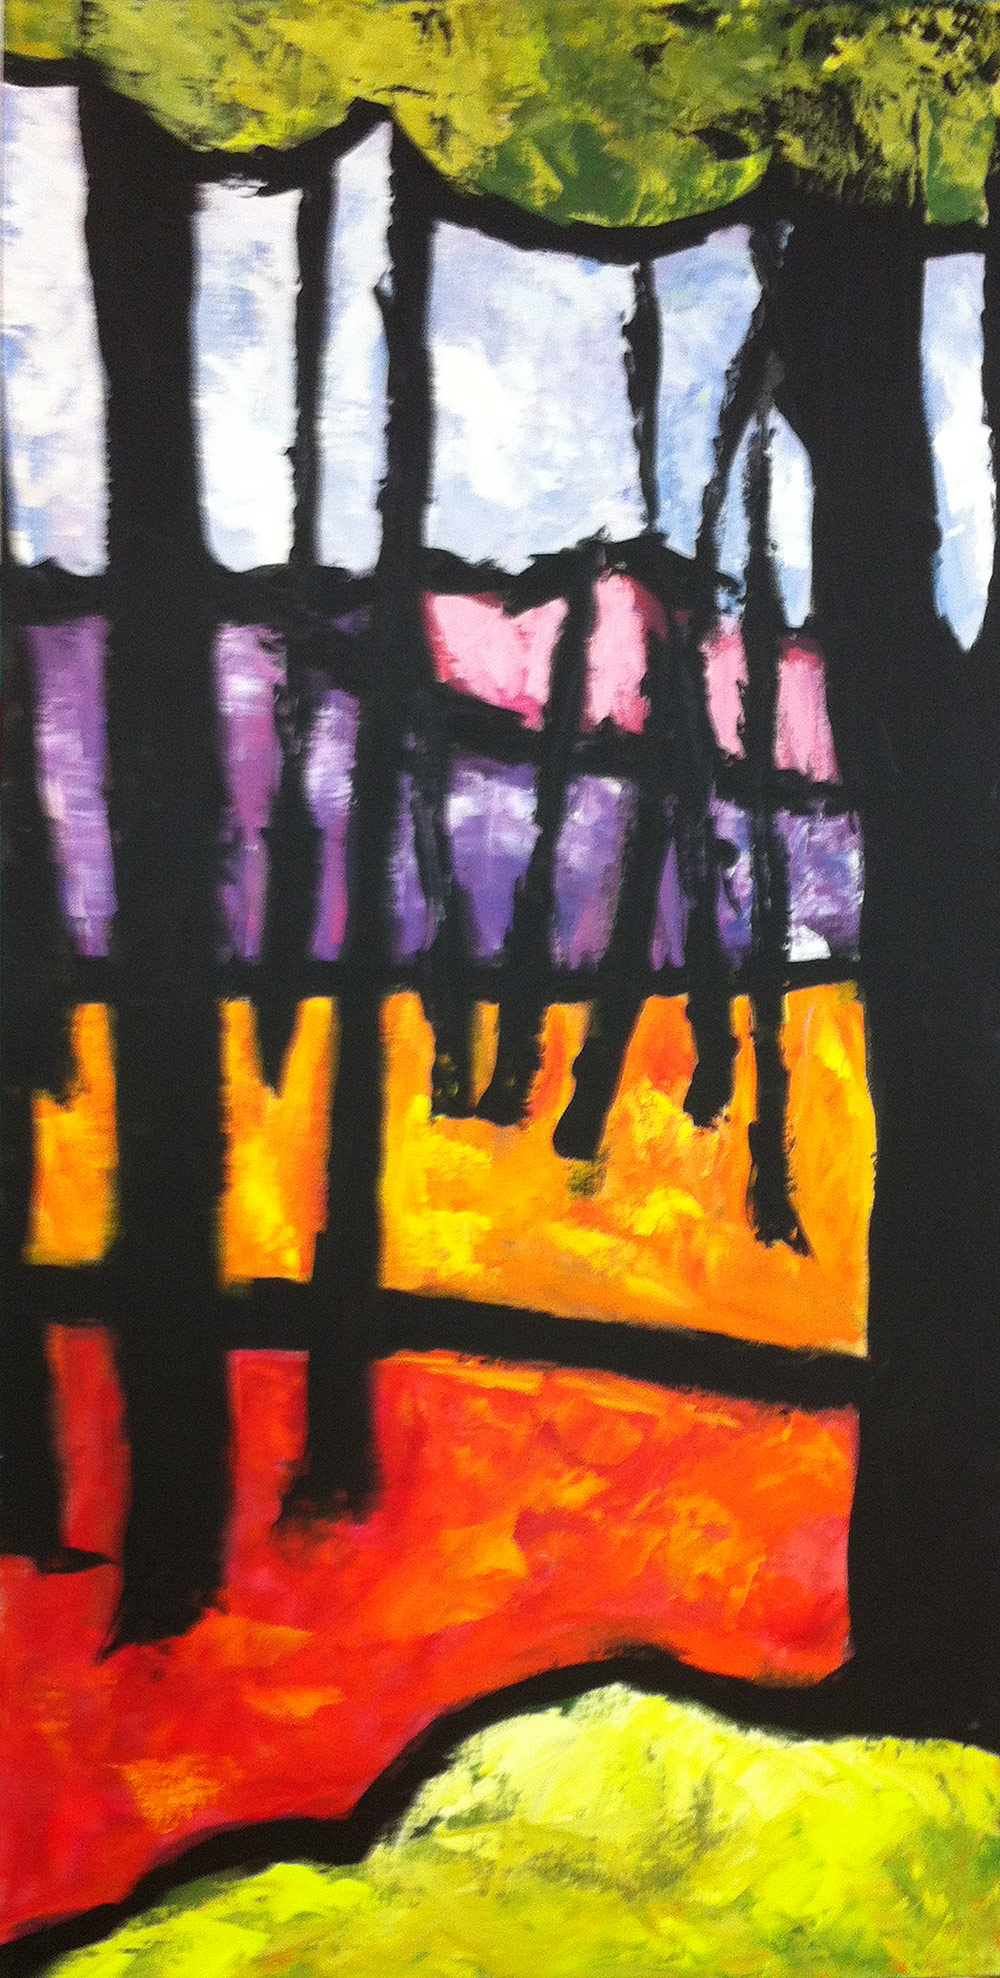 Tracey-J-Marshall-Abstract-Landscape-10-30-13.jpg